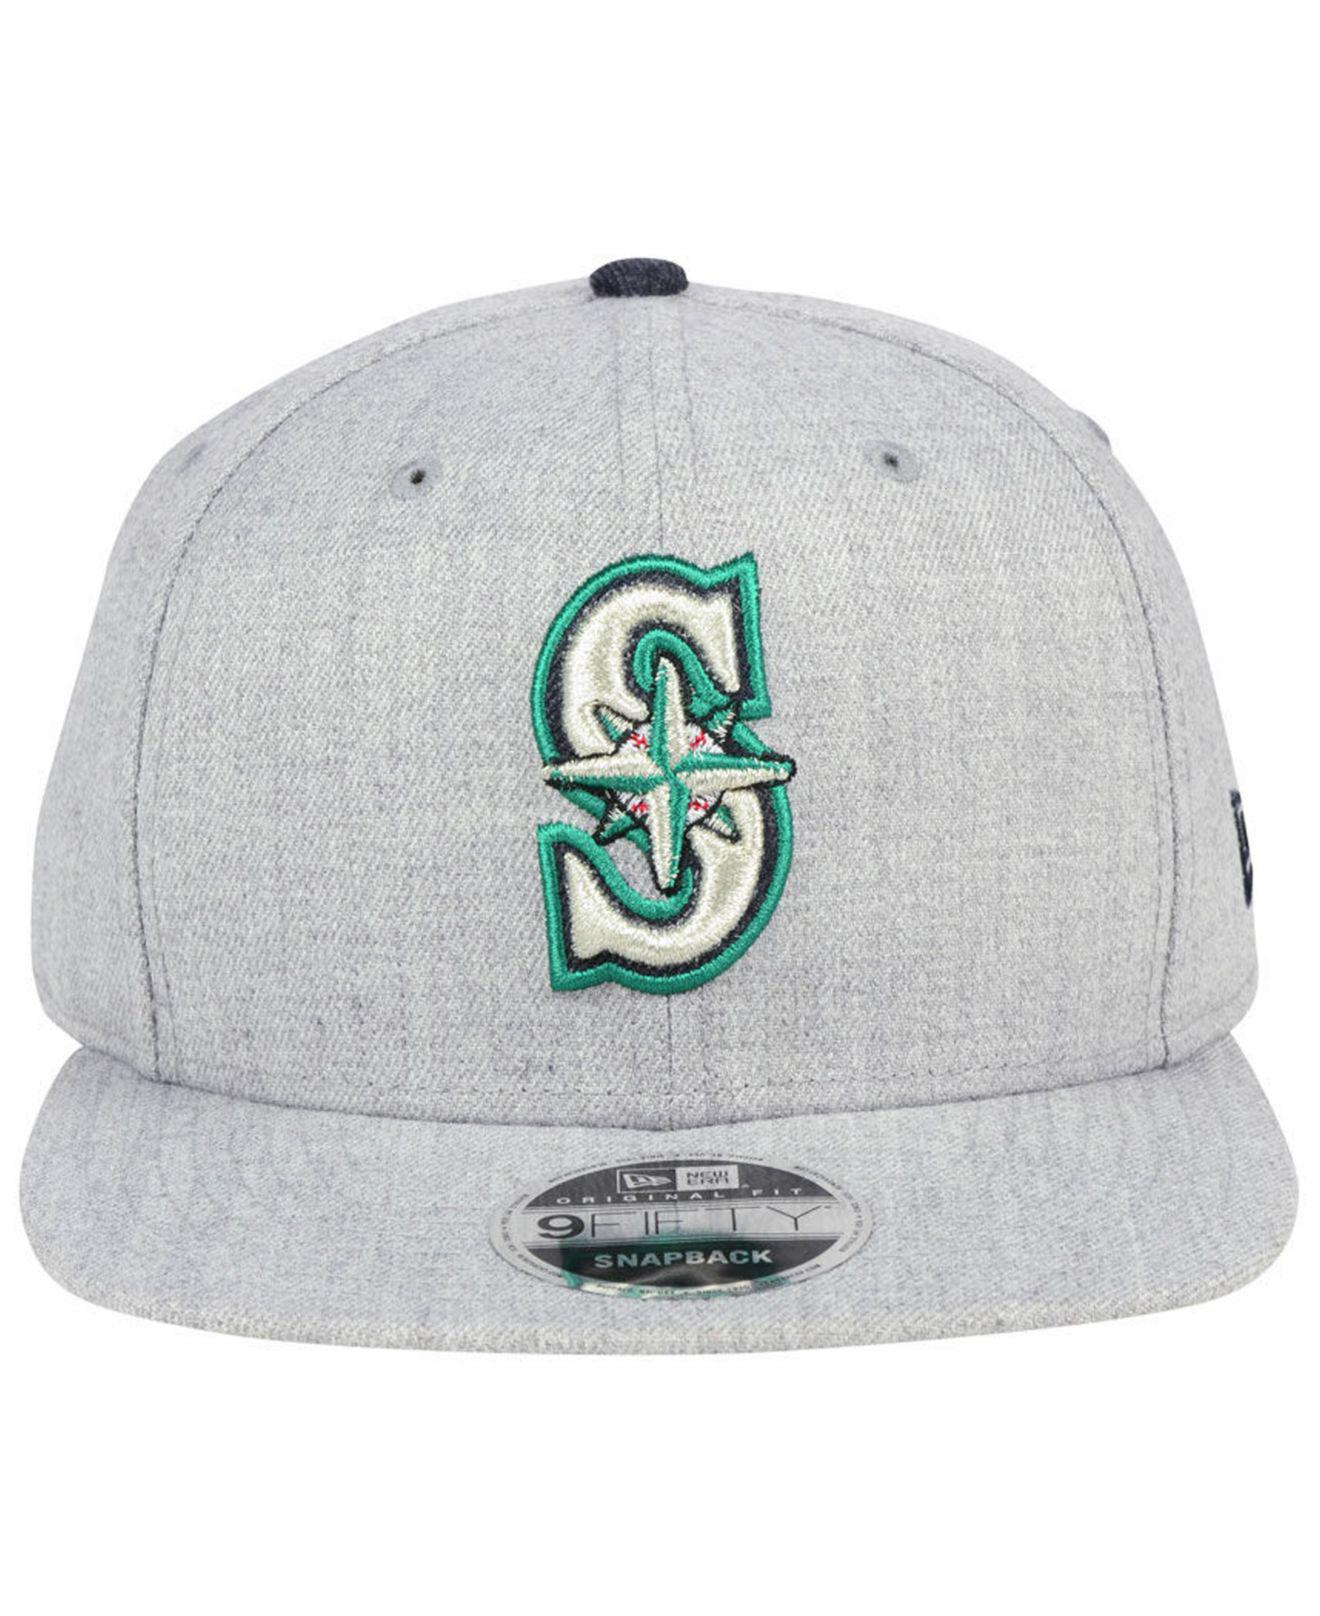 new product bd9a6 25857 ... shopping lyst ktz seattle mariners heather hype 9fifty snapback cap in  gray for men 6d2fa 6cb9d